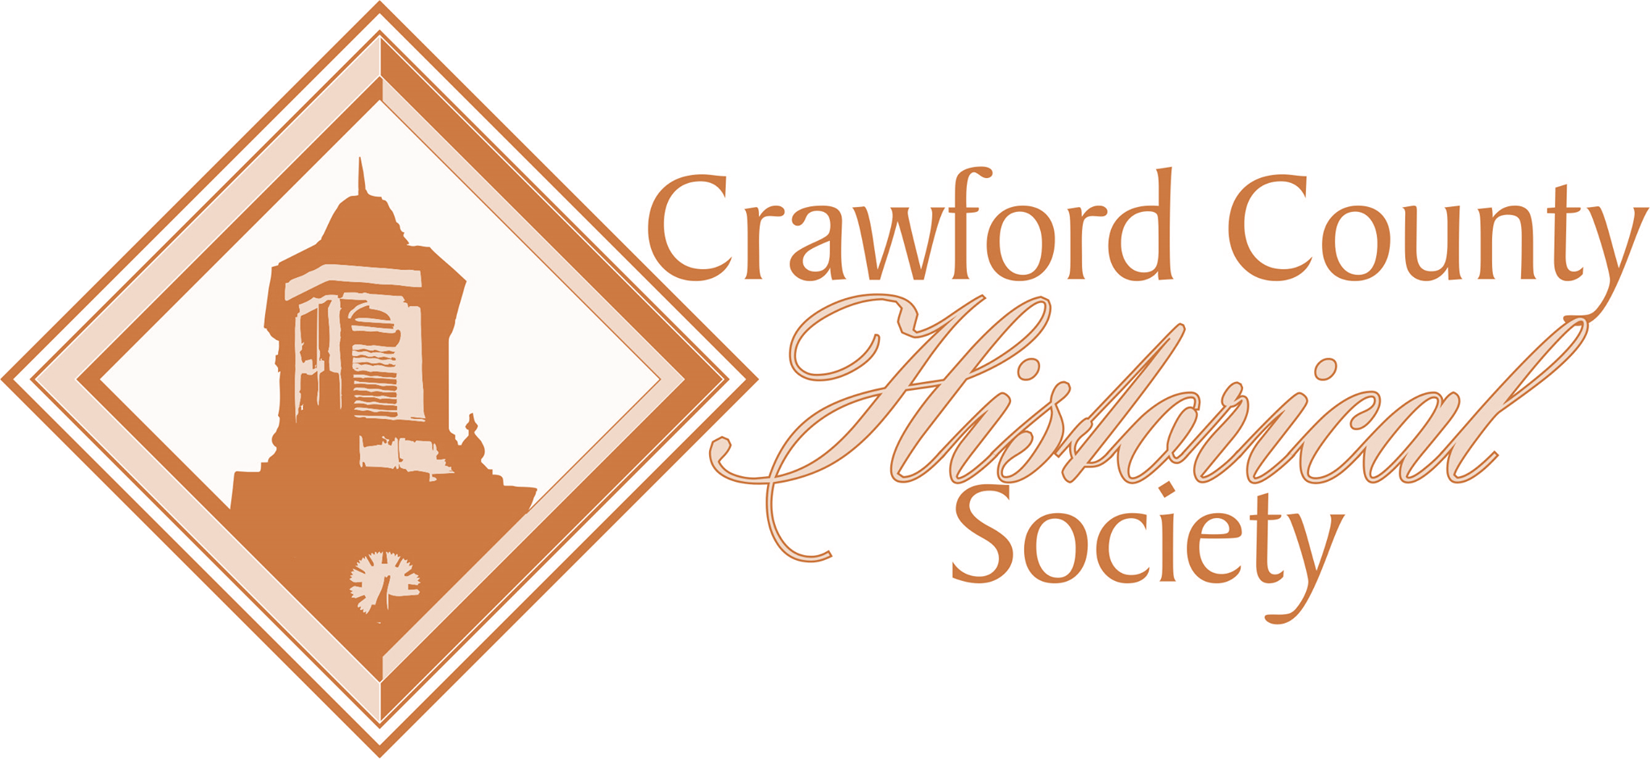 crawford county historical society Logo